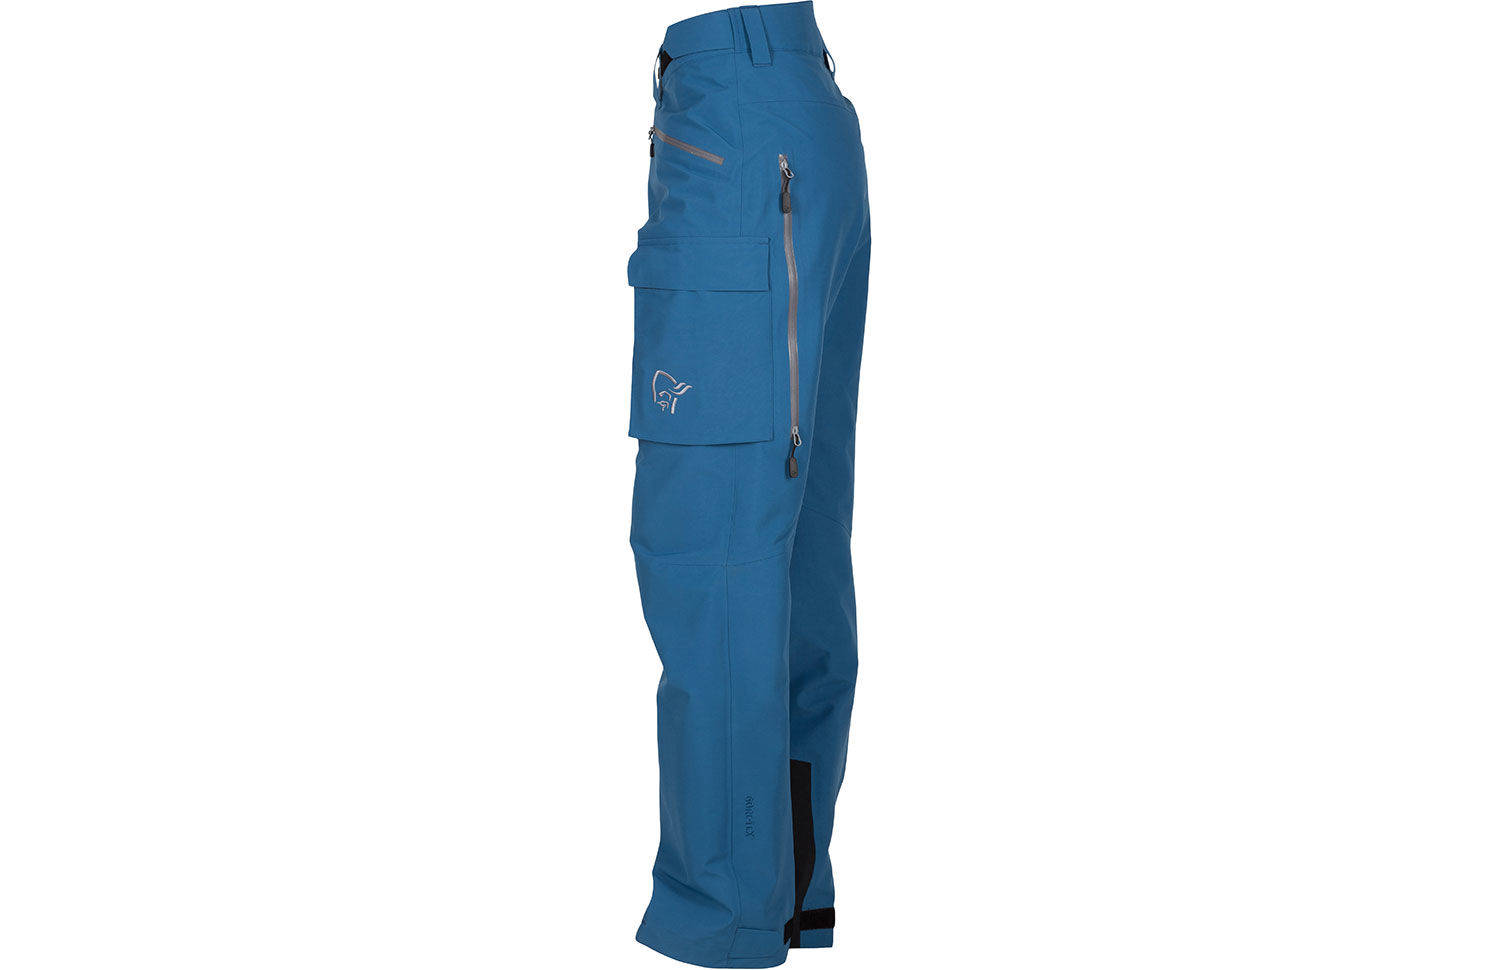 Norrona svalbard Gore-Tex pants for women